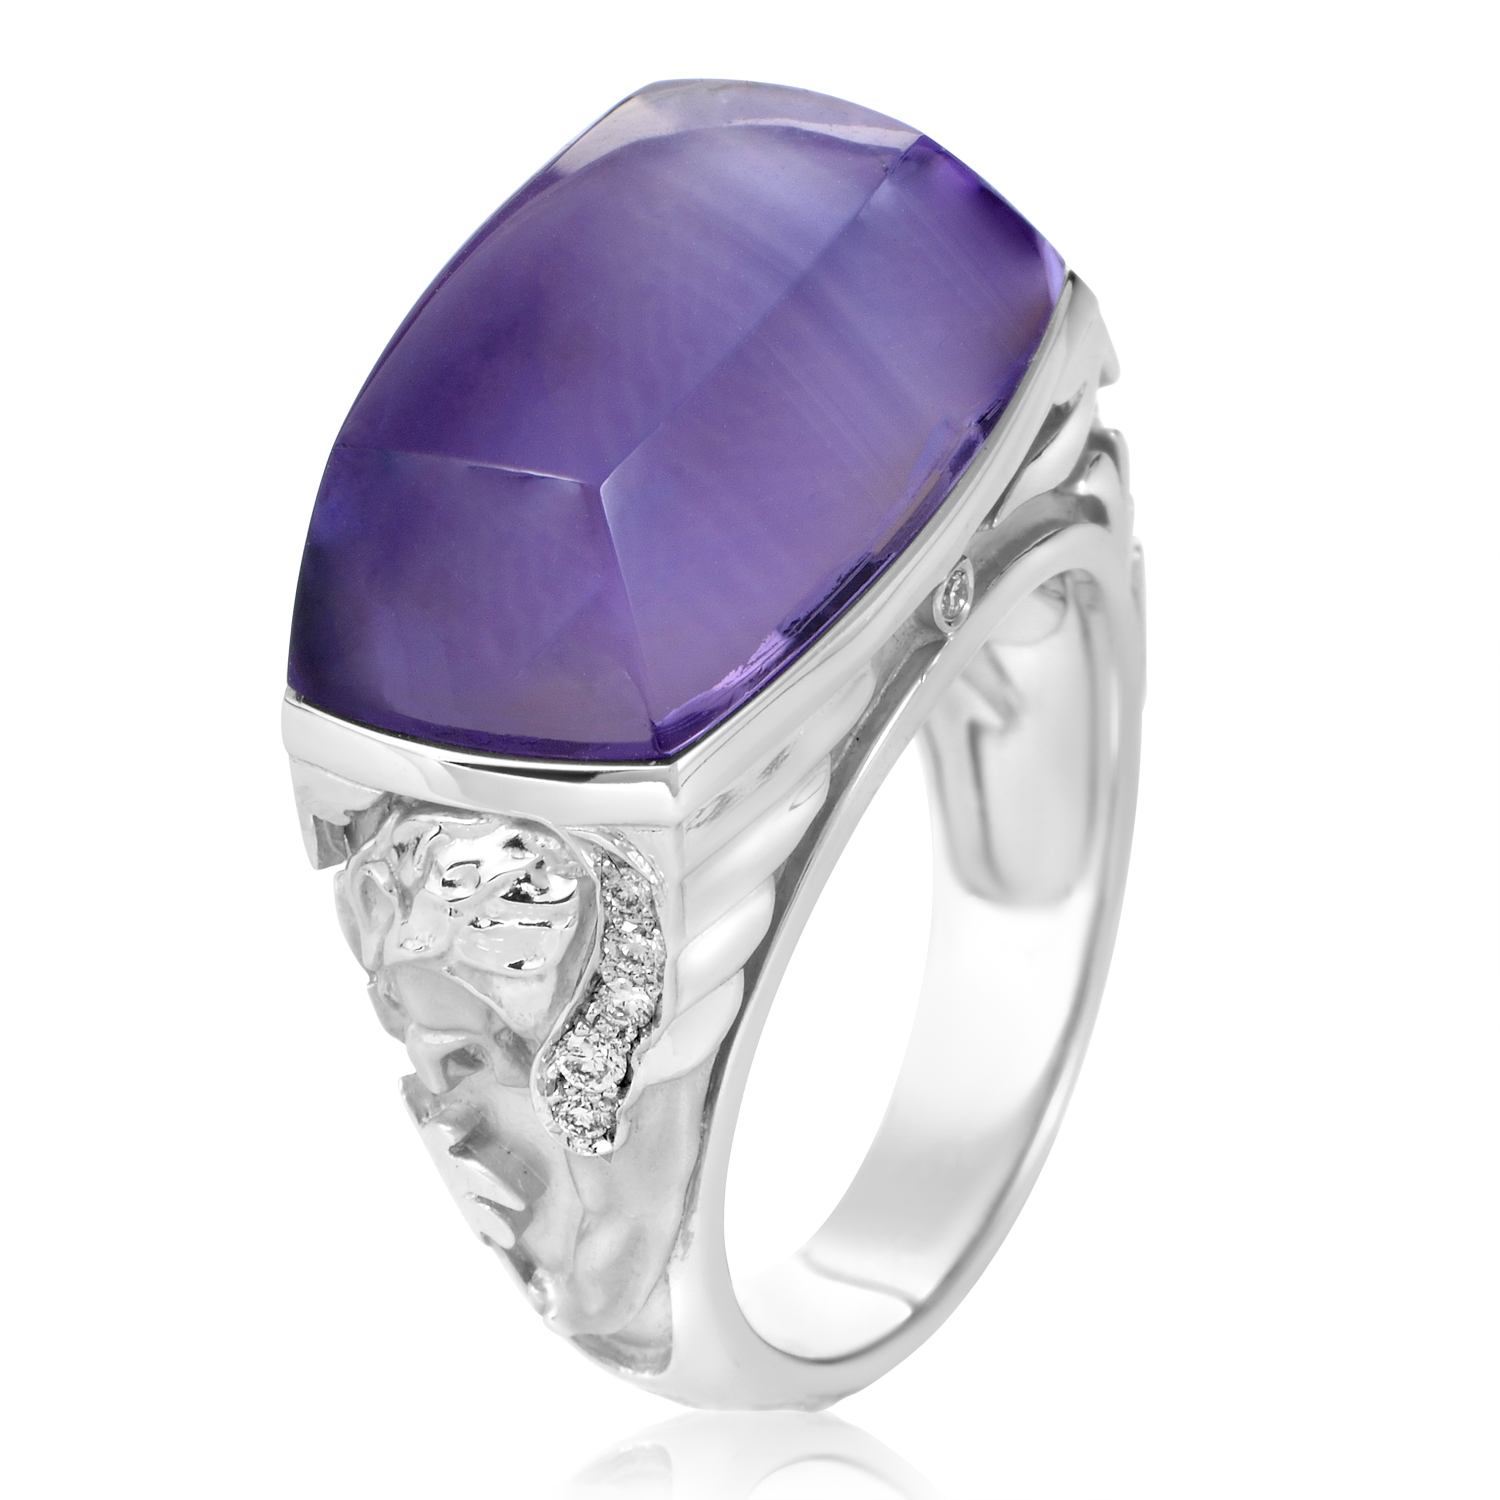 Babylon Caramelo Mini Women's 18K White Gold Diamond & Amethyst Ring